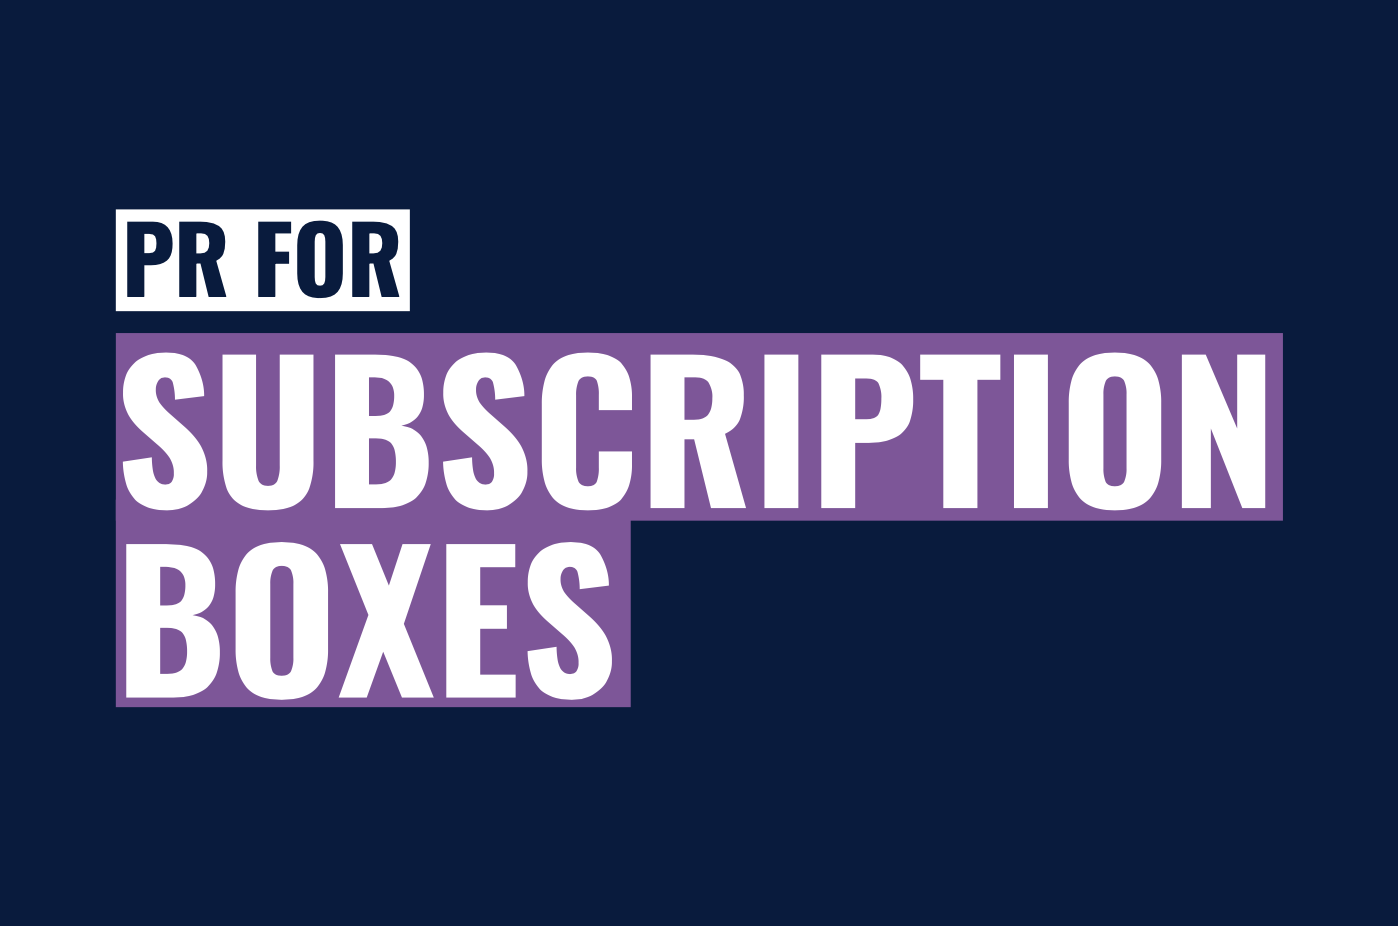 How subscription box businesses can use PR to stand out